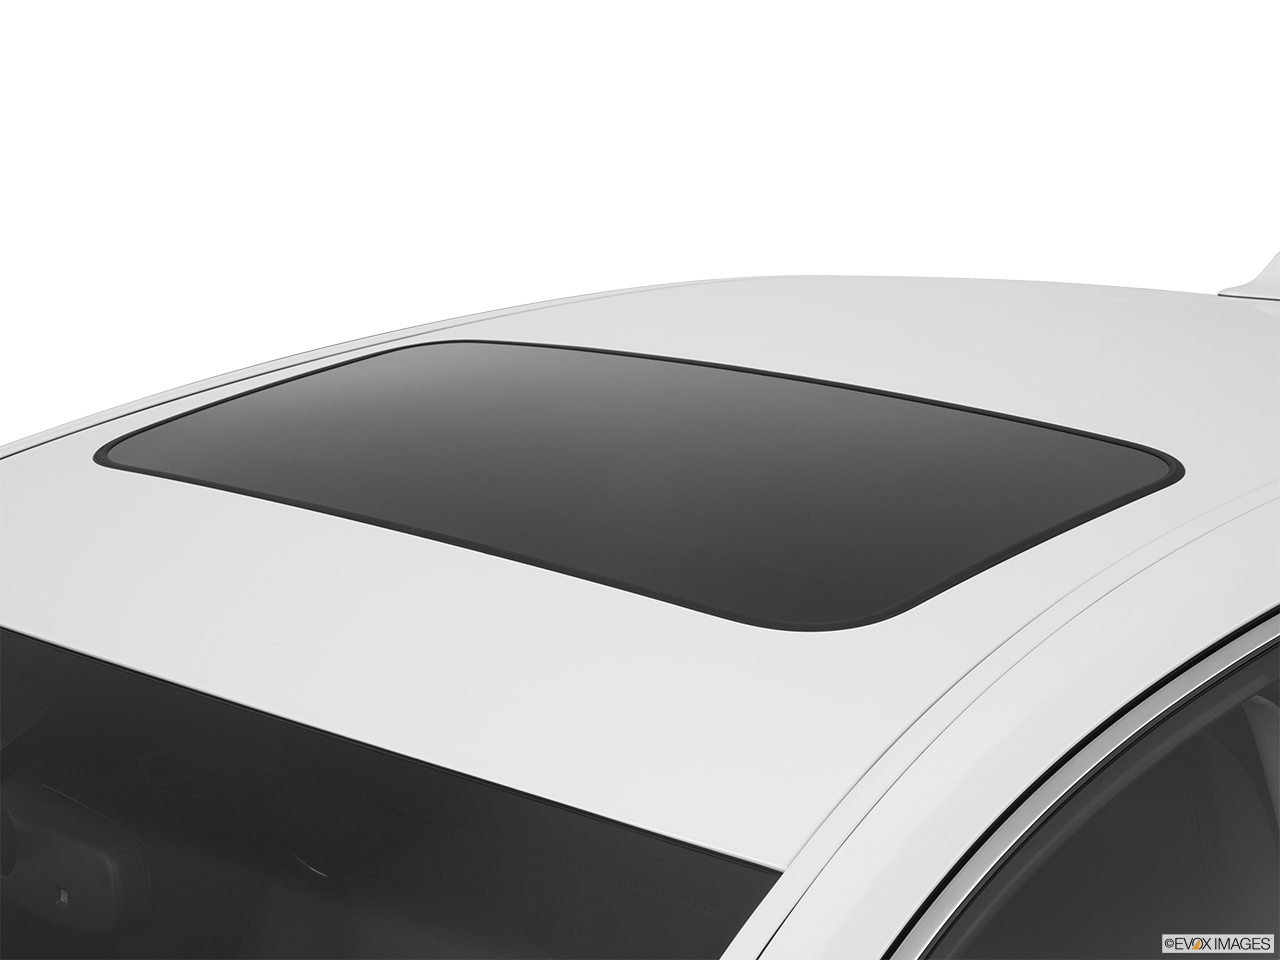 2011 Lexus GS Hybrid GS450h Sunroof/moonroof.